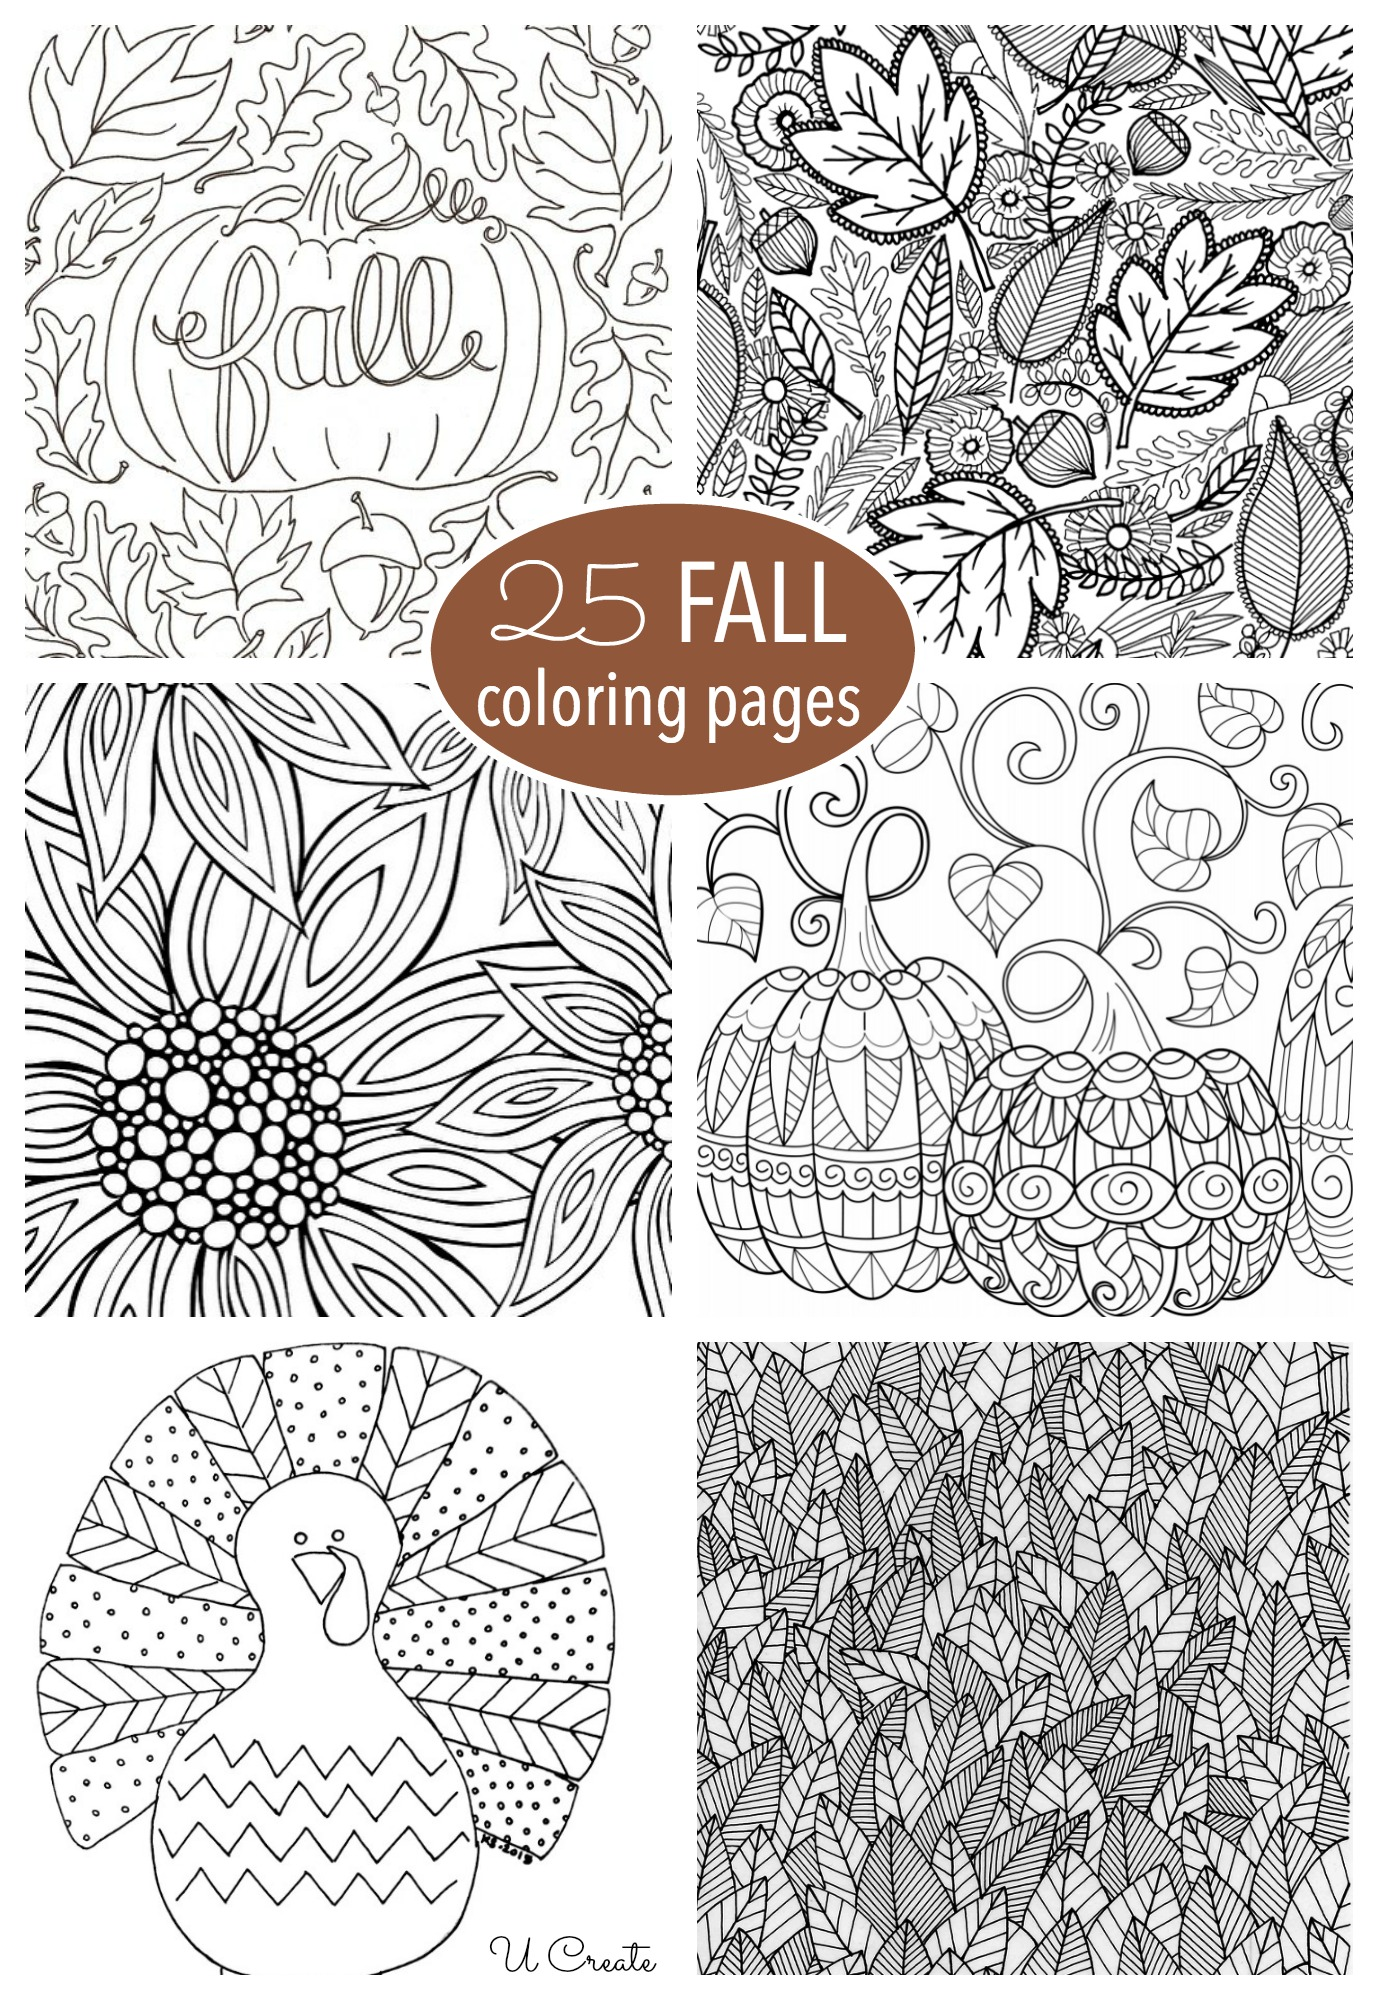 Free Printable Fall Coloring Pages at u-createcrafts.com